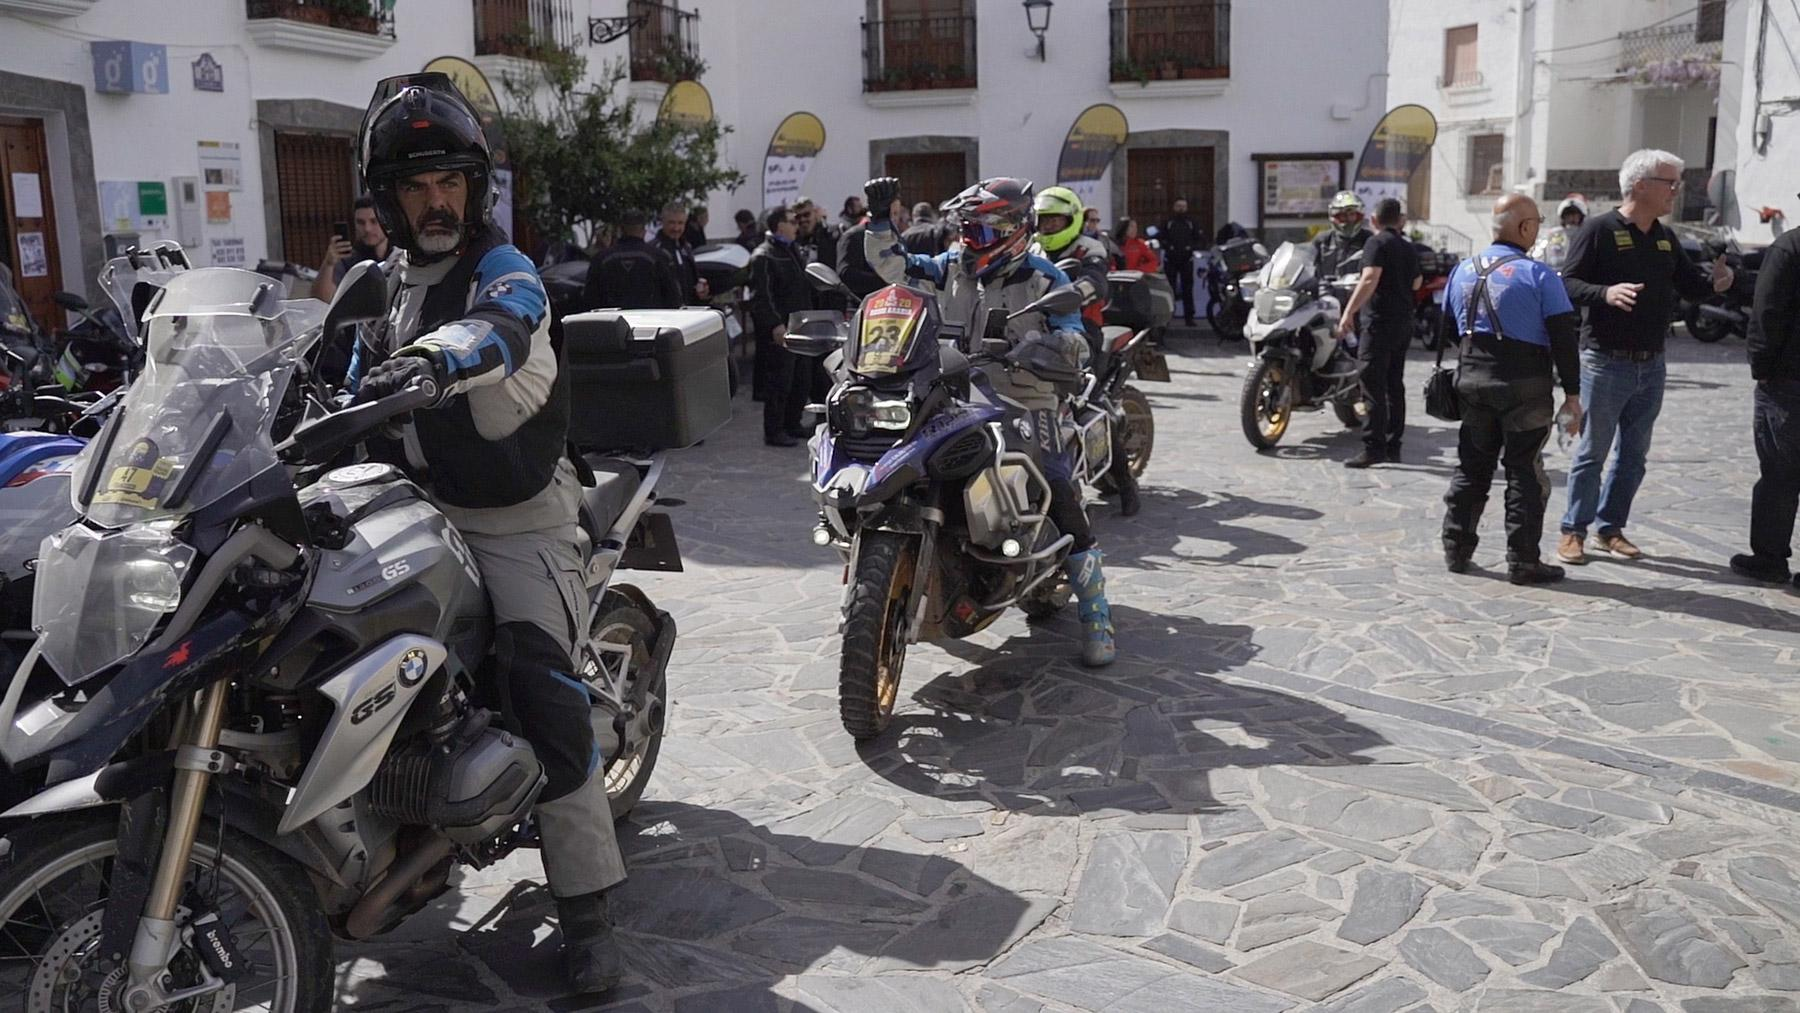 Touratech Riders Club